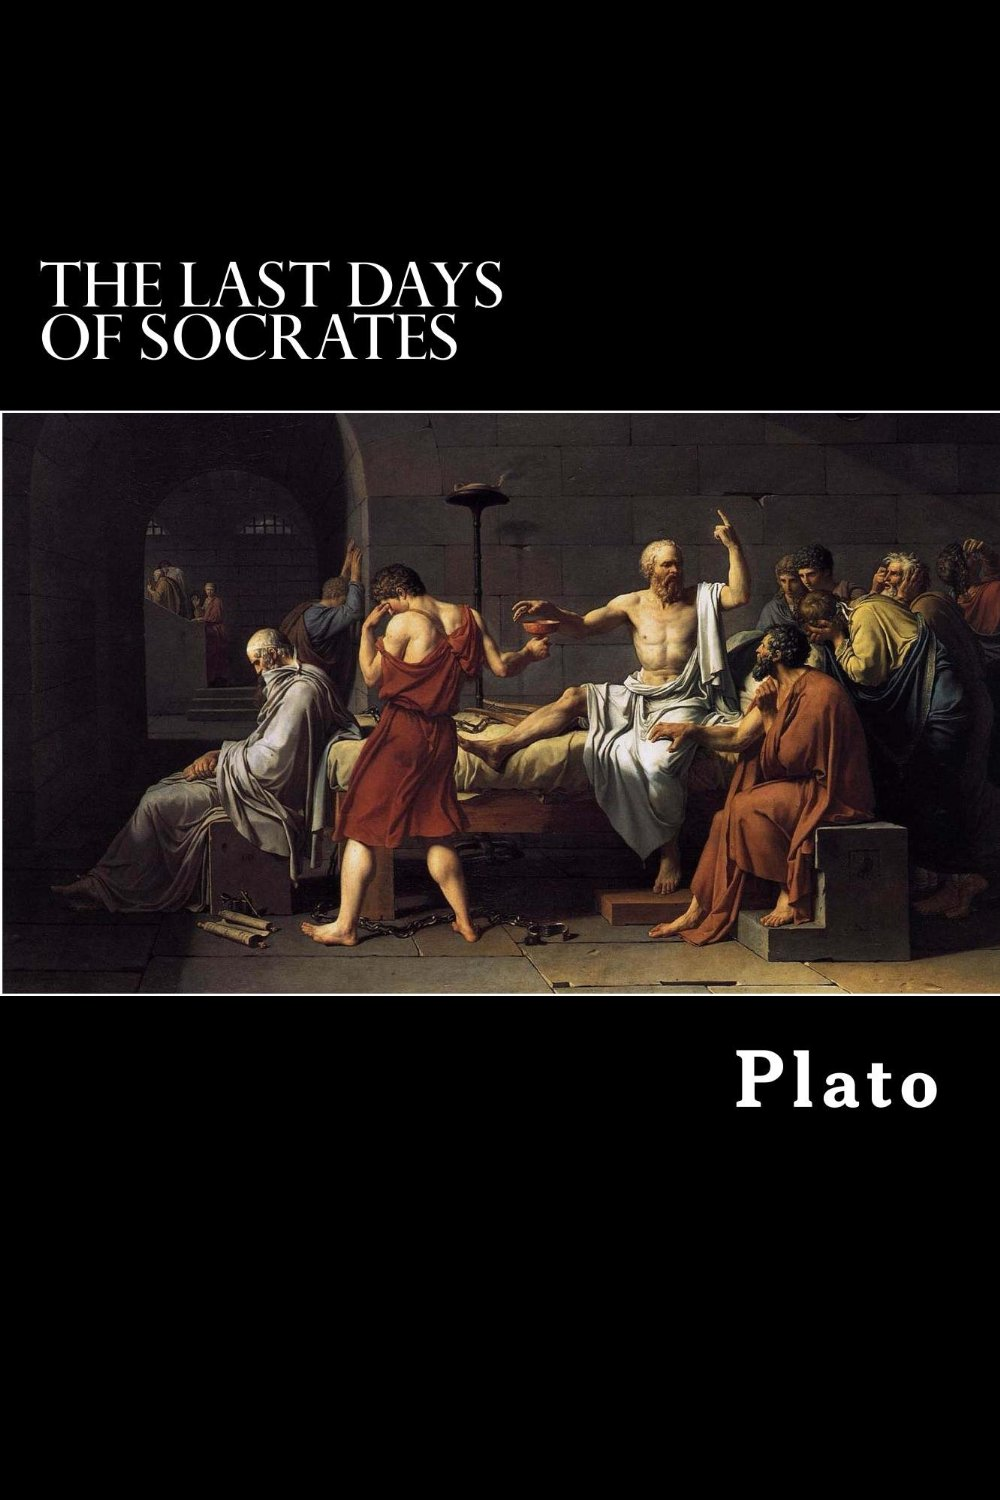 an analysis of the last days of socrates a book by plato An examination of the relationship between plato and socrates plato socrates three of plato's four writings concerning the last days of socrates come.